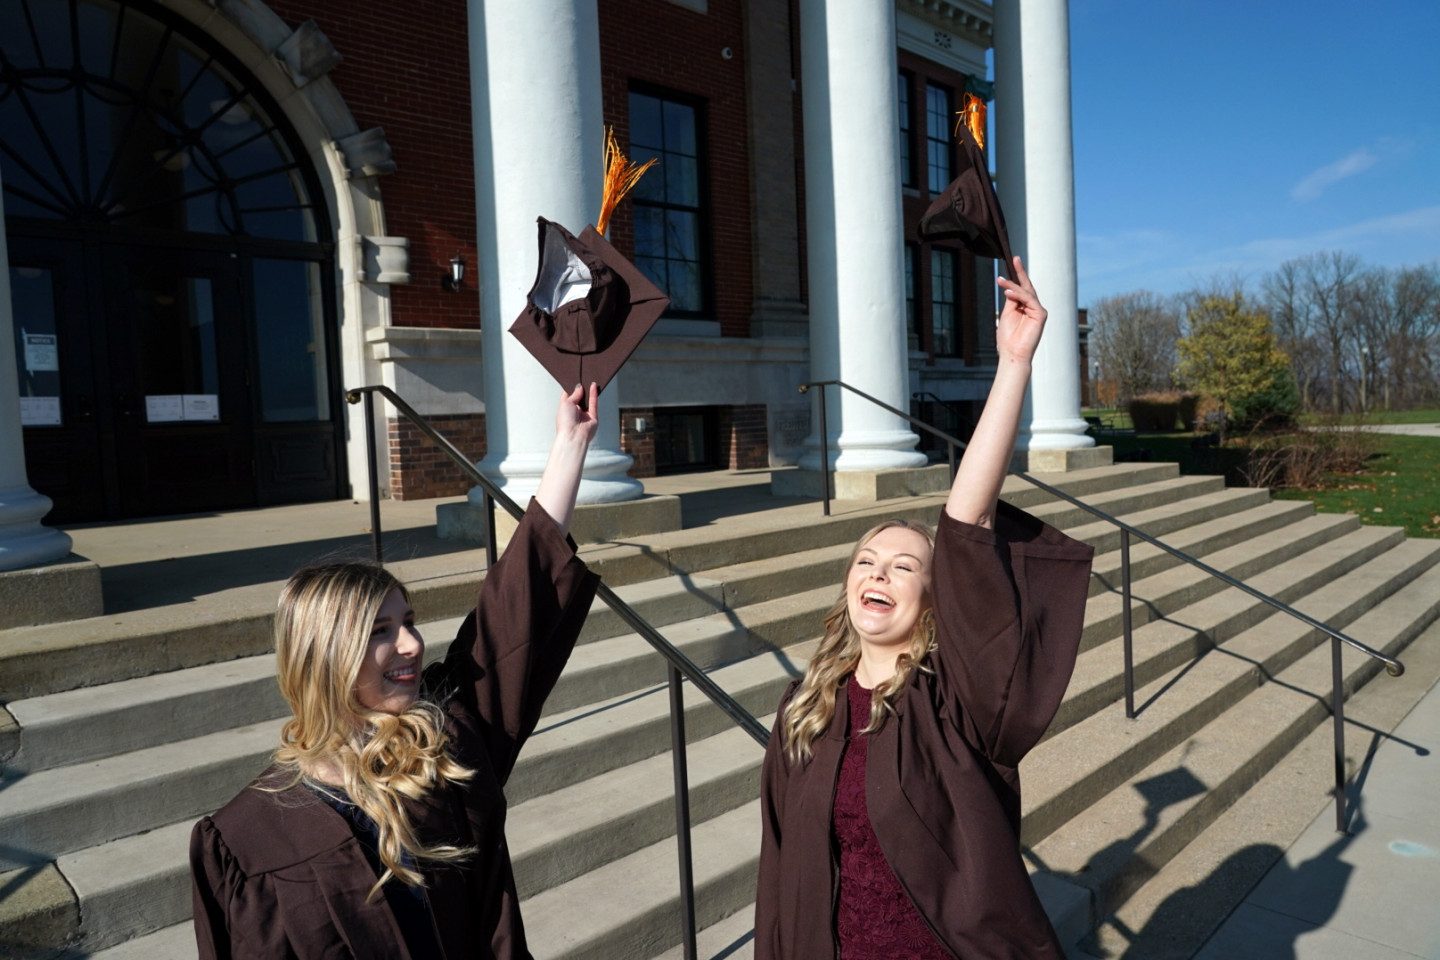 Two students in graduation attire celebrate on the steps of Heritage Hall.